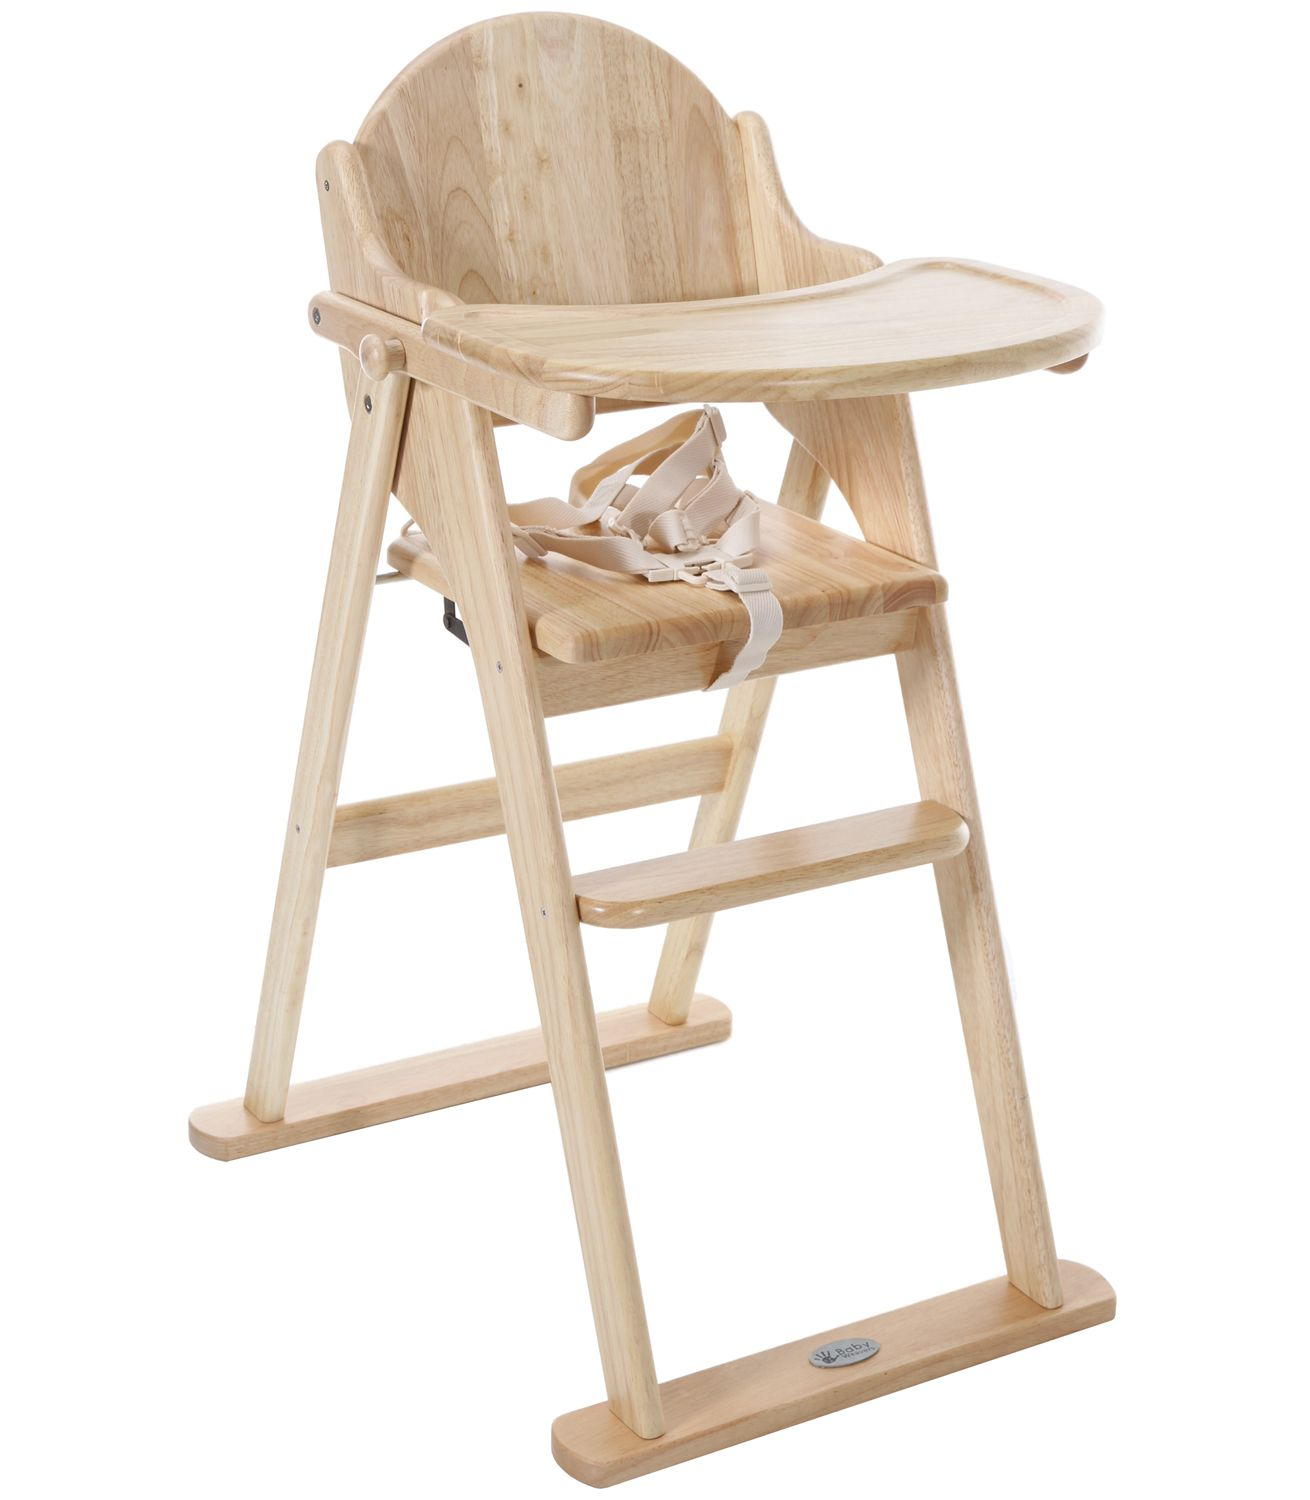 Buy your Baby Weavers Wooden Folding Highchair Natural